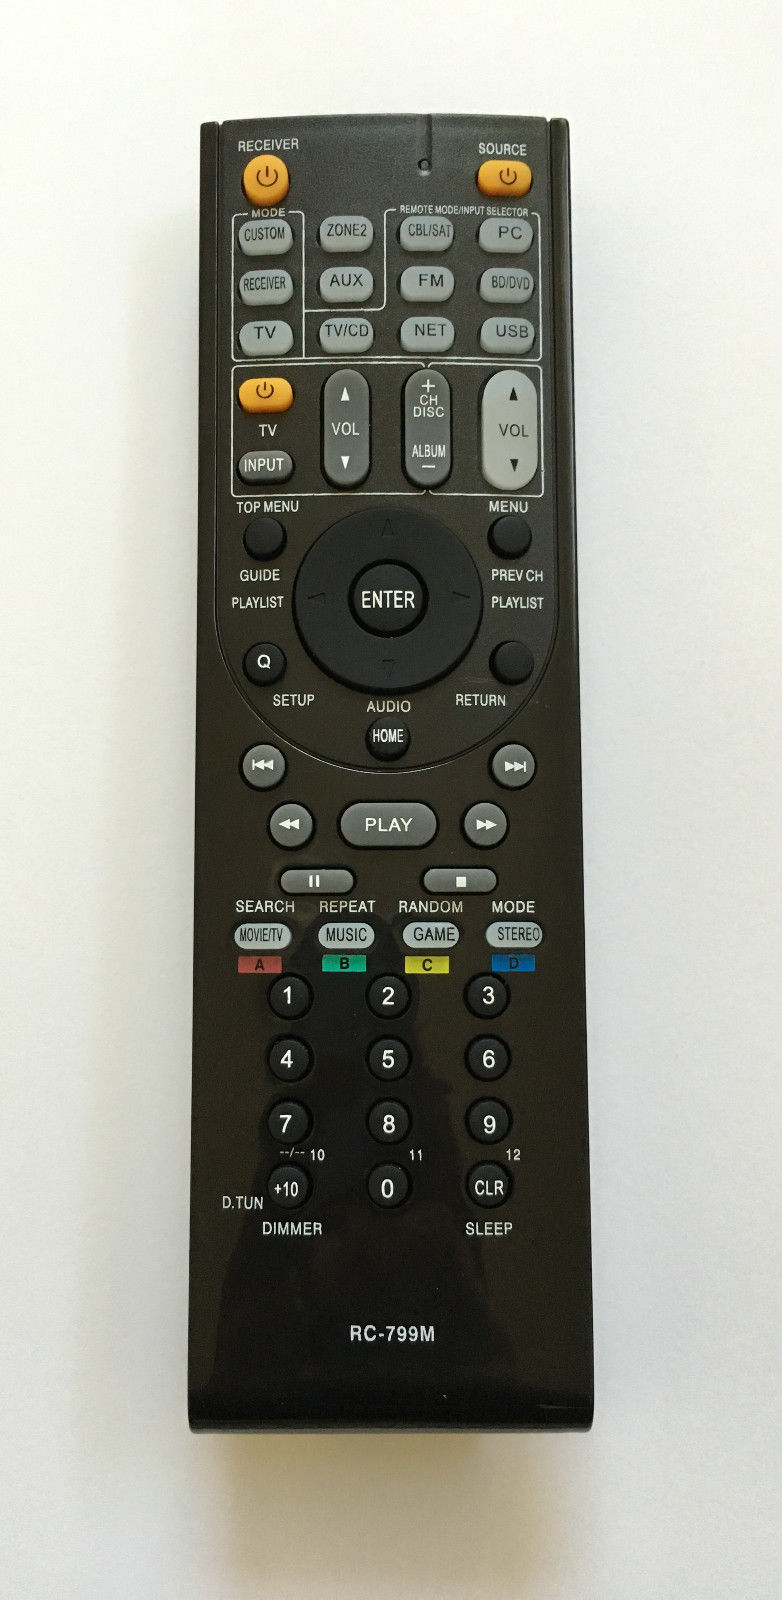 New Remote For ONKYO RC-799M HT-S3500 HT-R548 HT-RC330 Audio Video Receiver by Unbranded